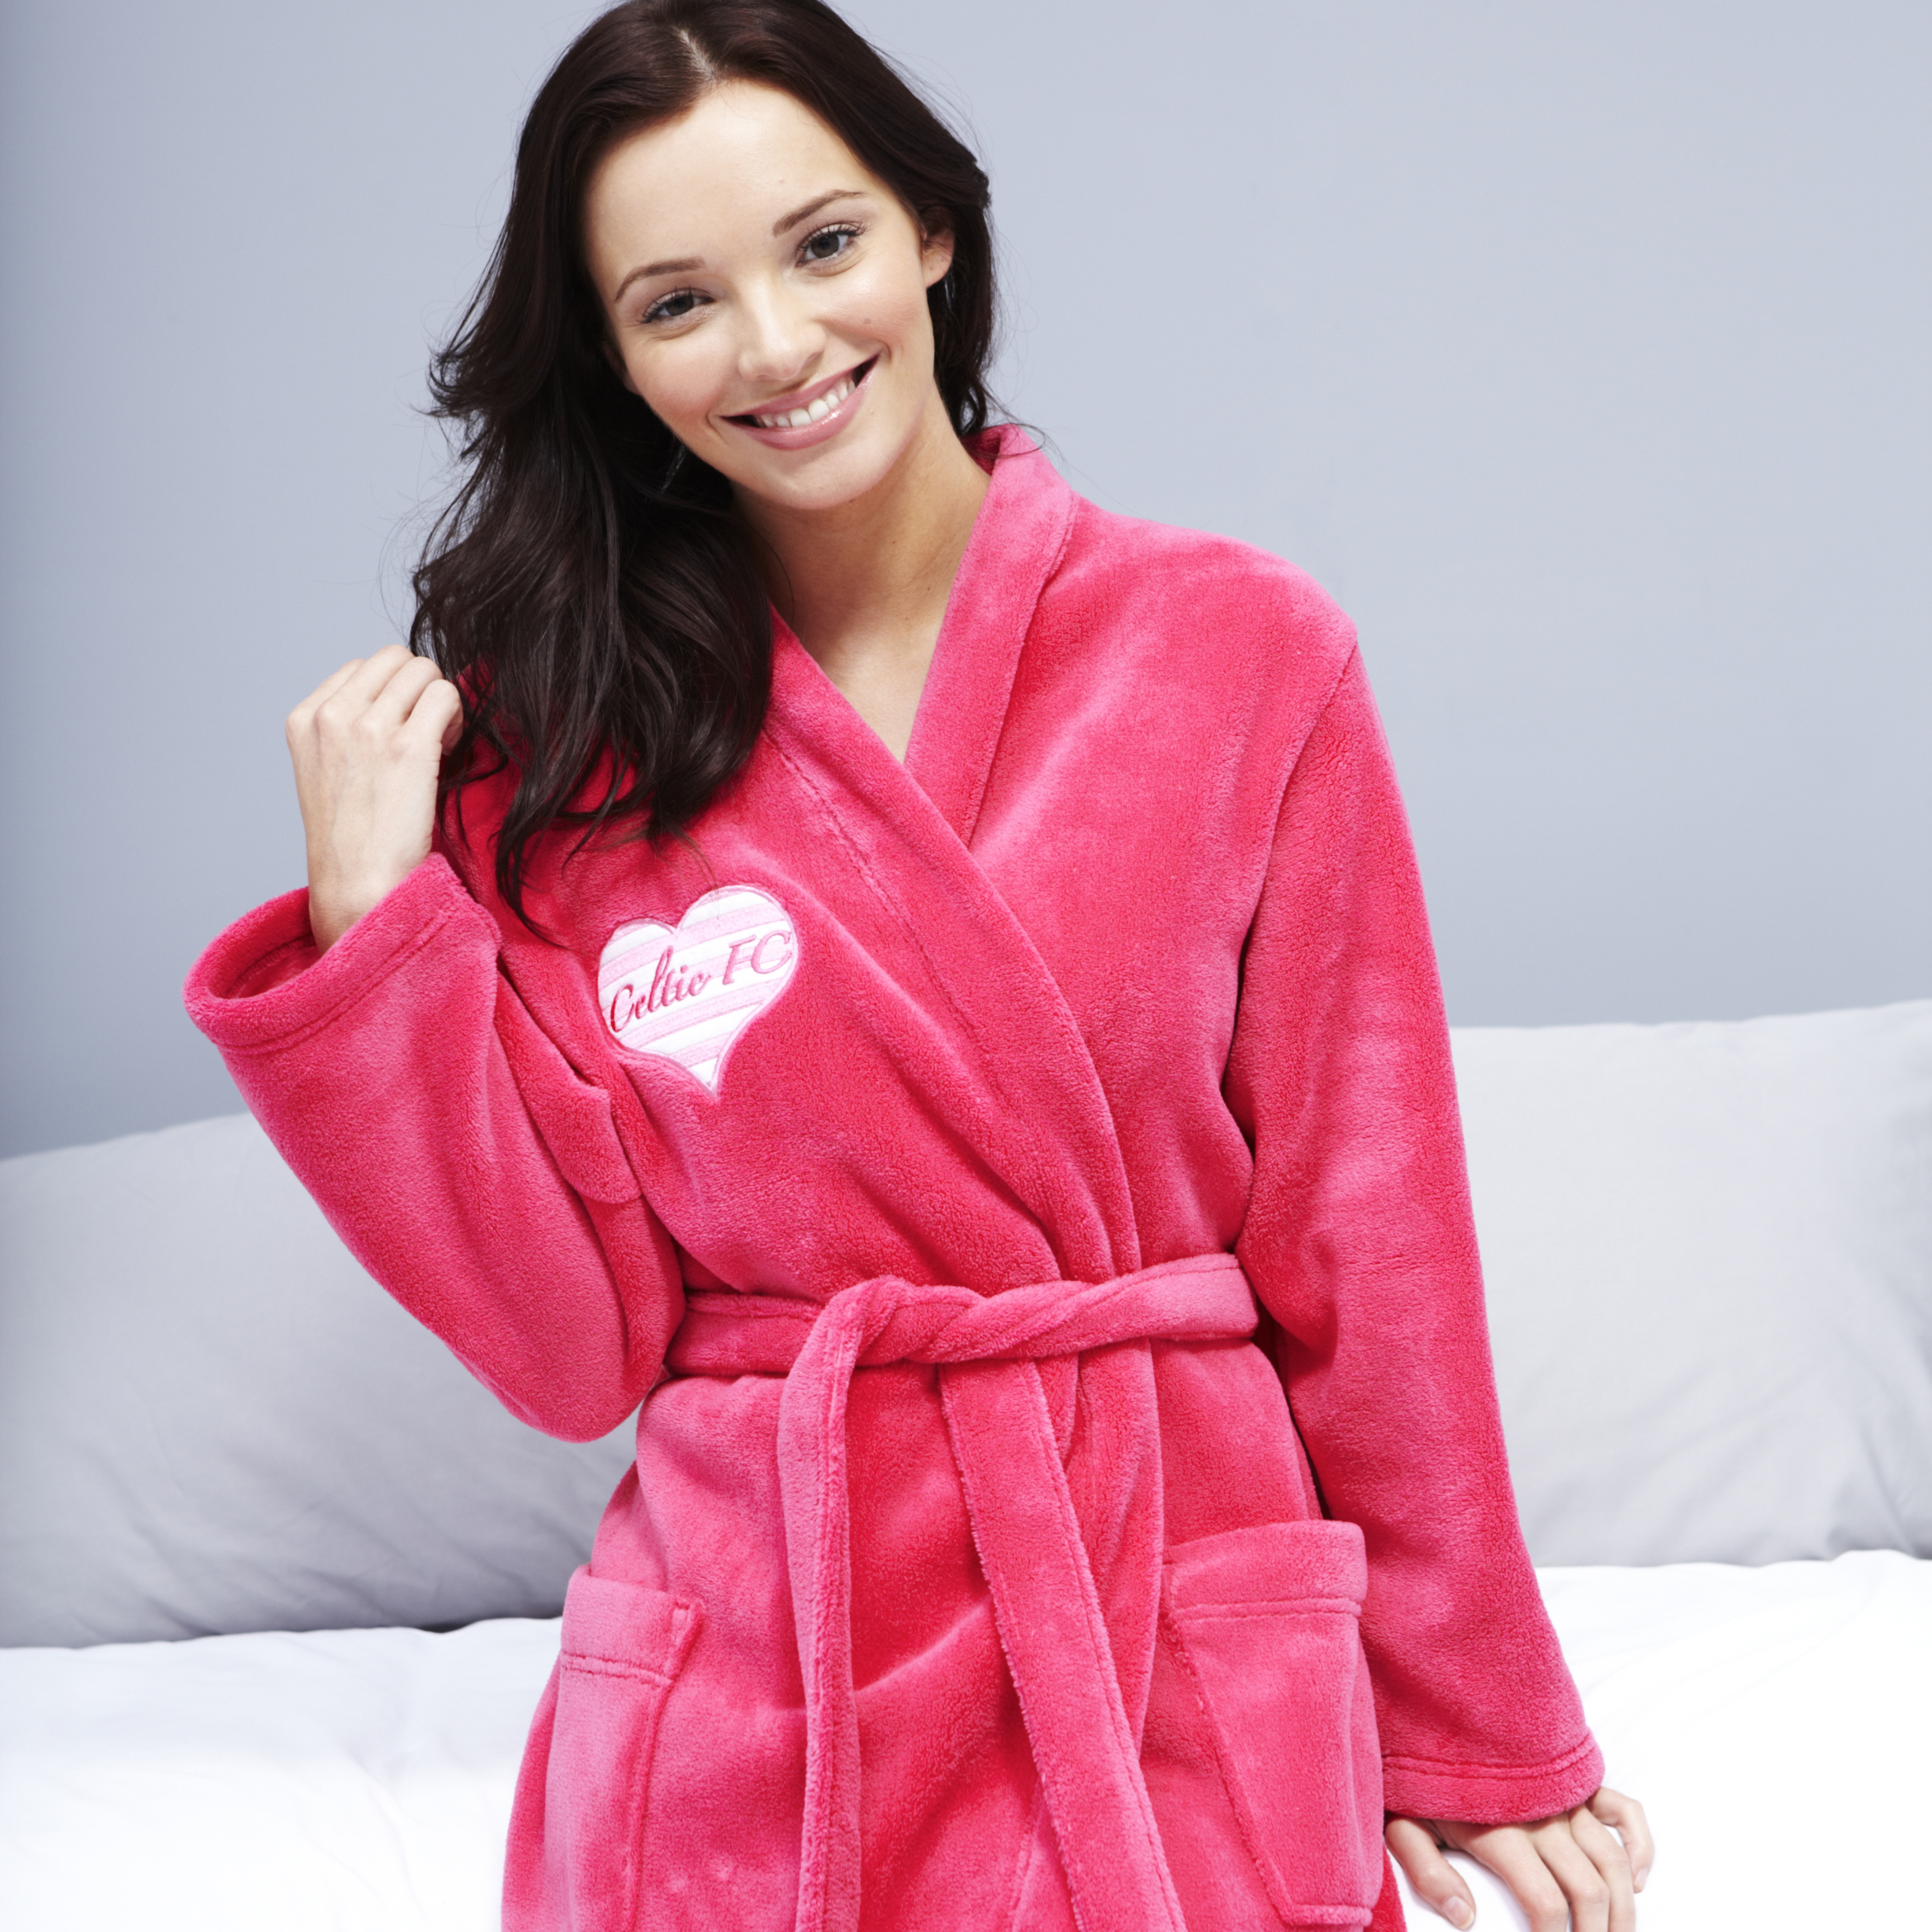 Celtic Heart Robe - Hot Pink - Womens